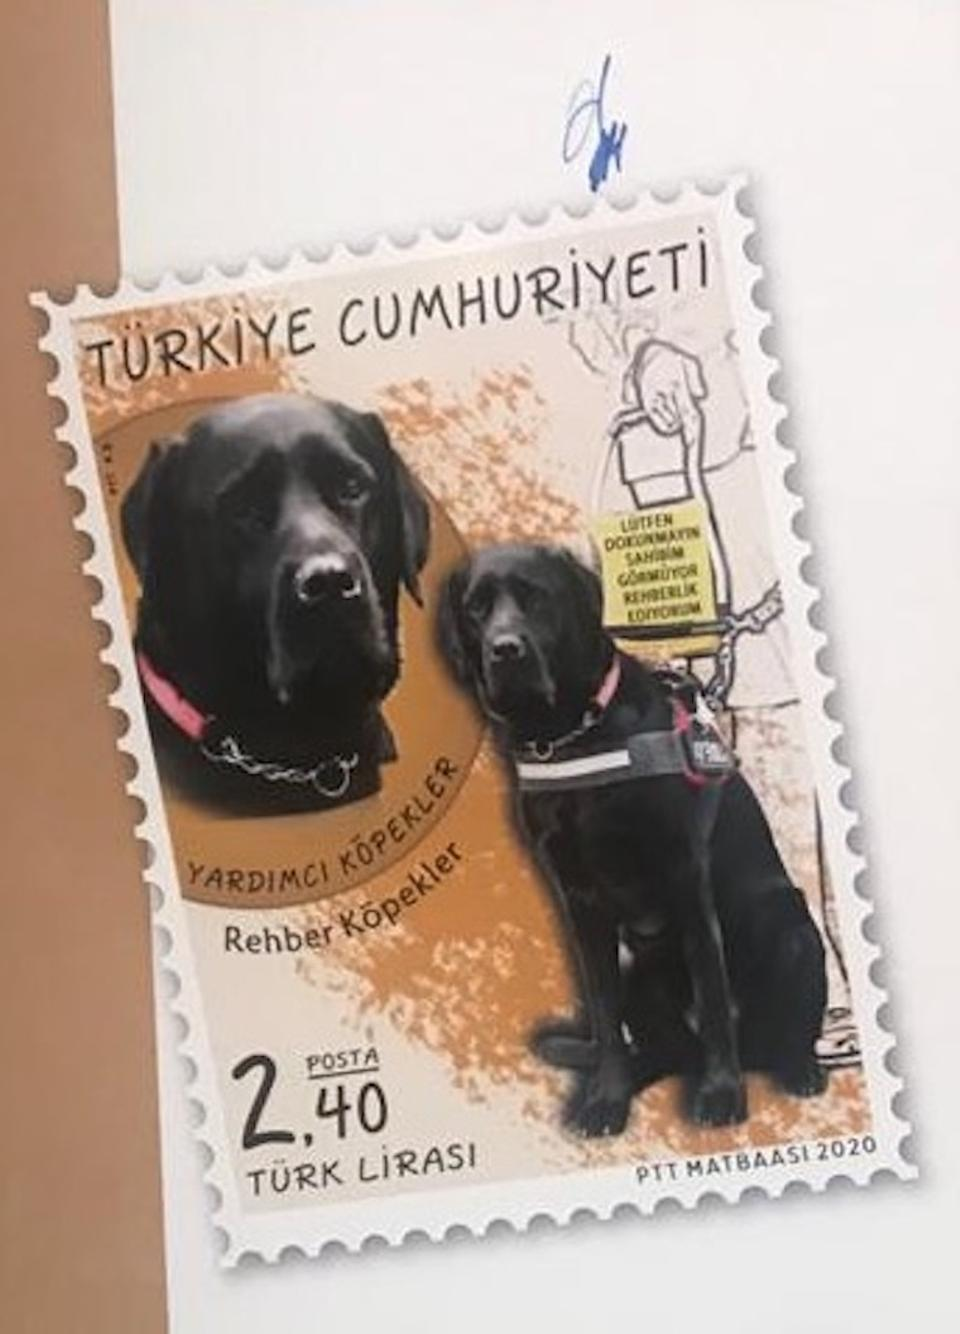 Guide dog Kara, a black labrador, is immortalised with a stamp.